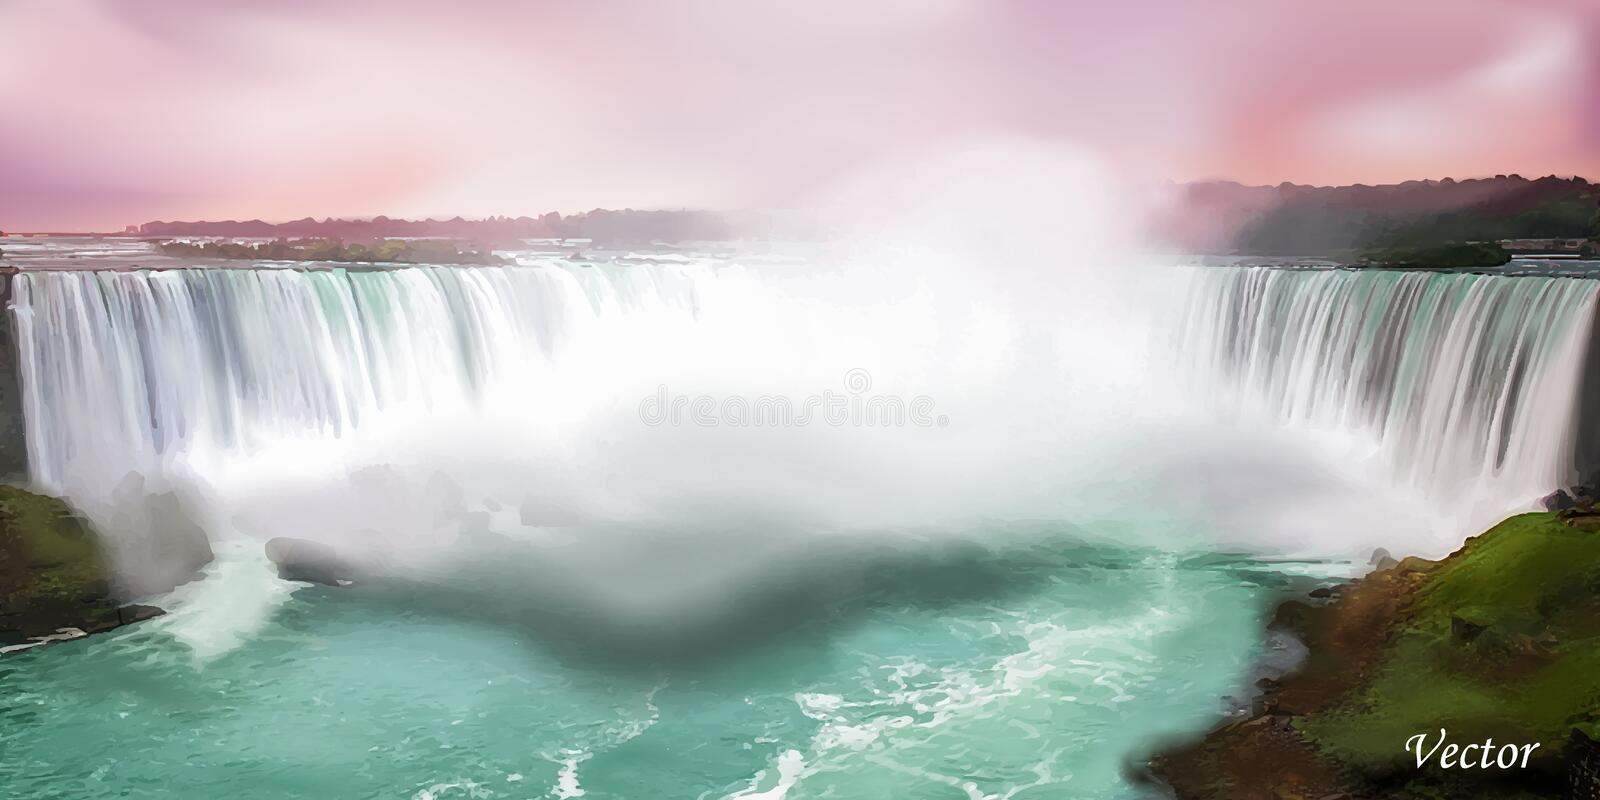 Realistic Niagara falls. Vector nature background. Colorful illustration of a waterfall stock illustration